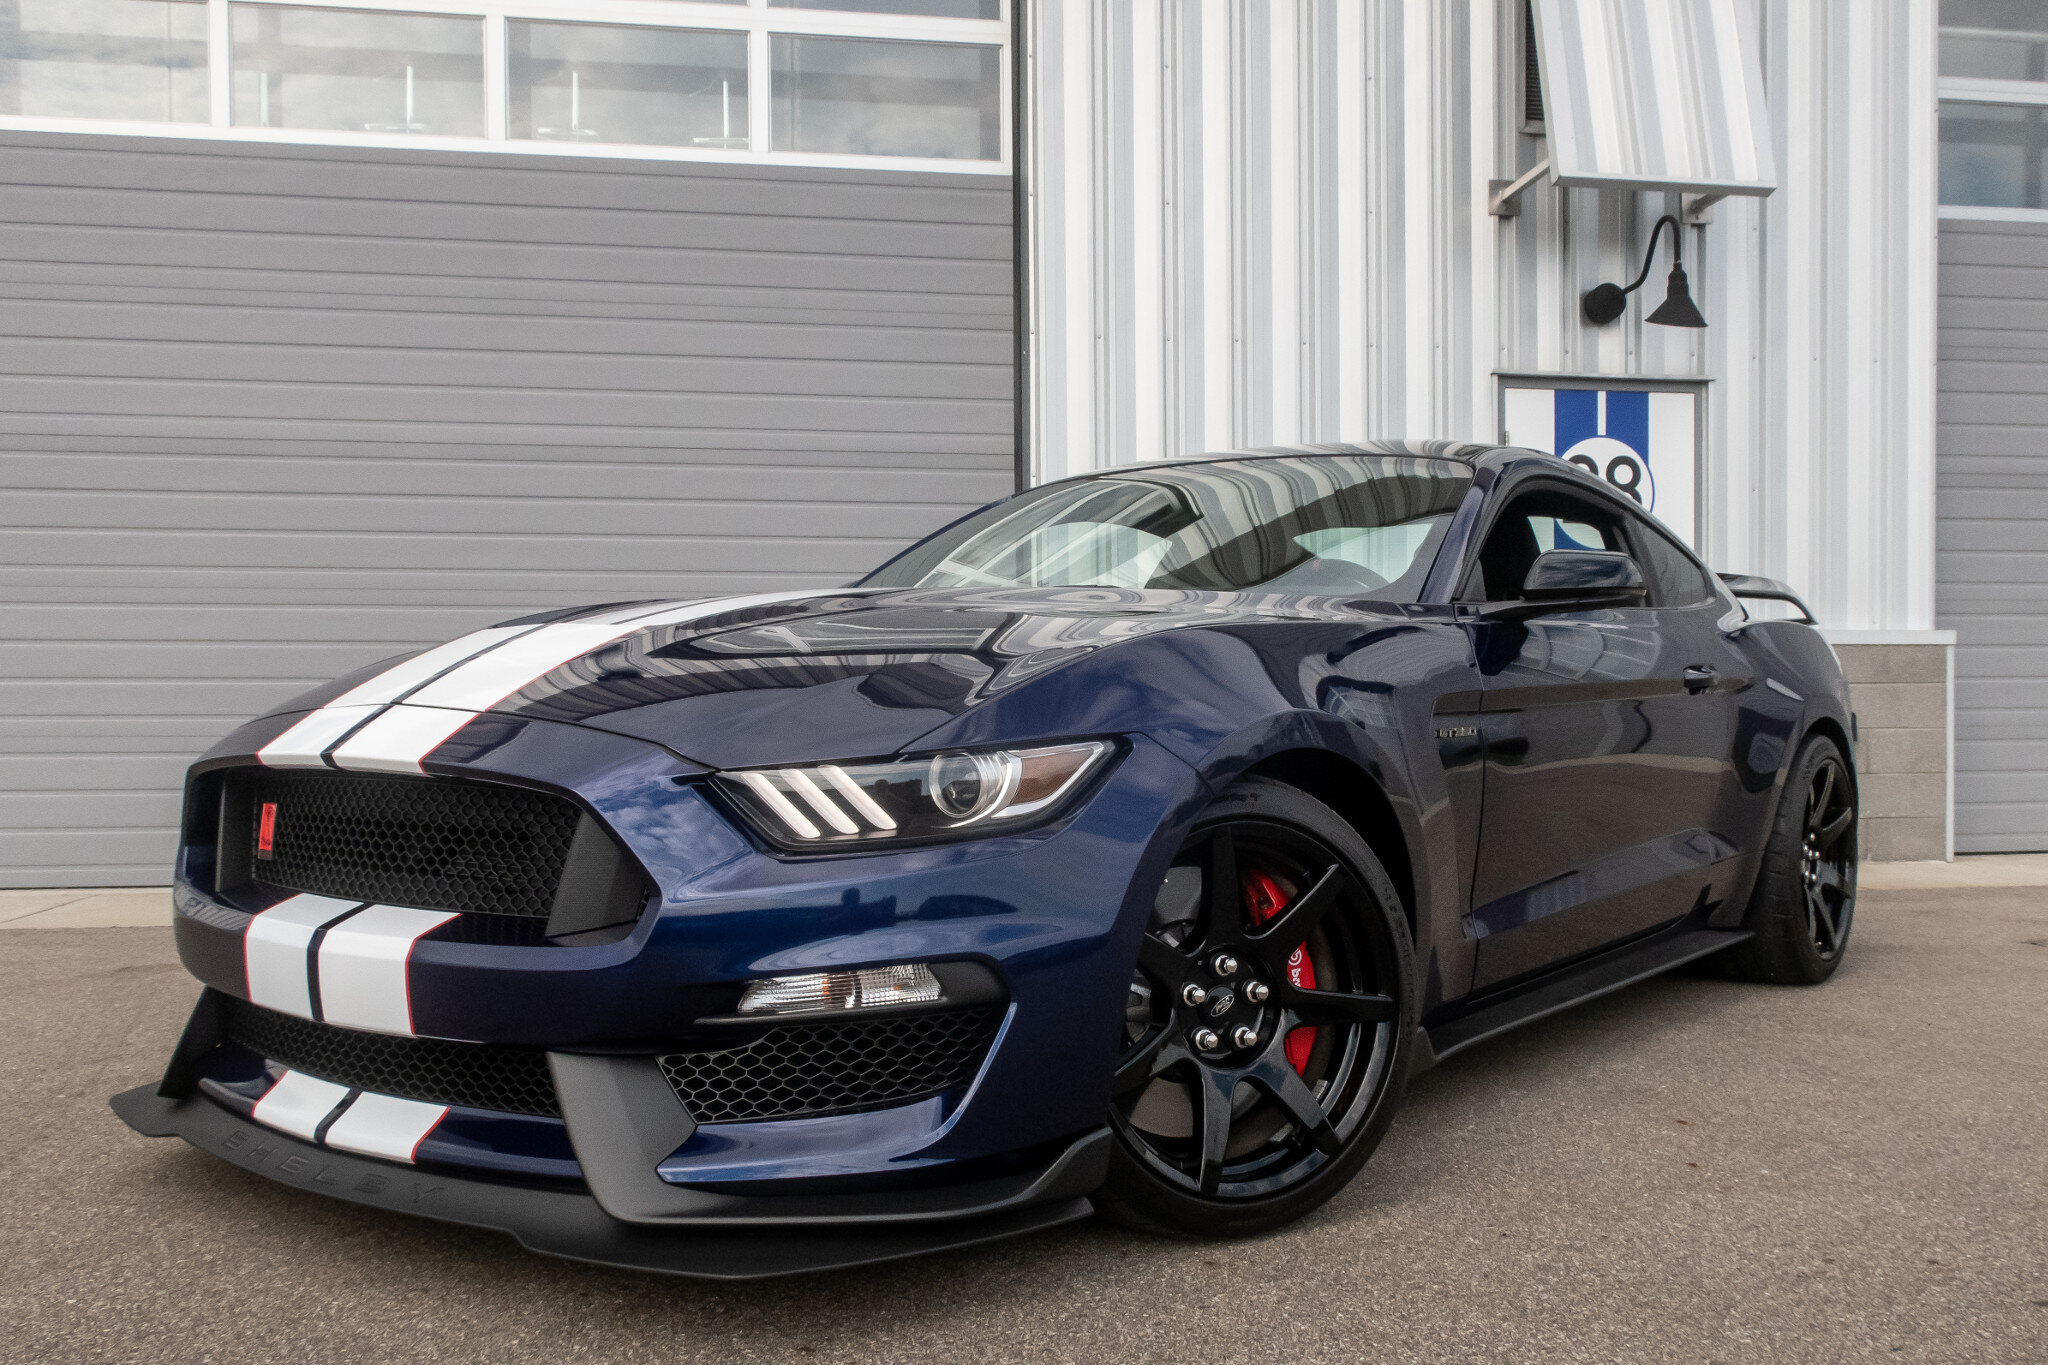 2020-ford-mustang-shelby-gt350r-track-ready-street-capable.jpg